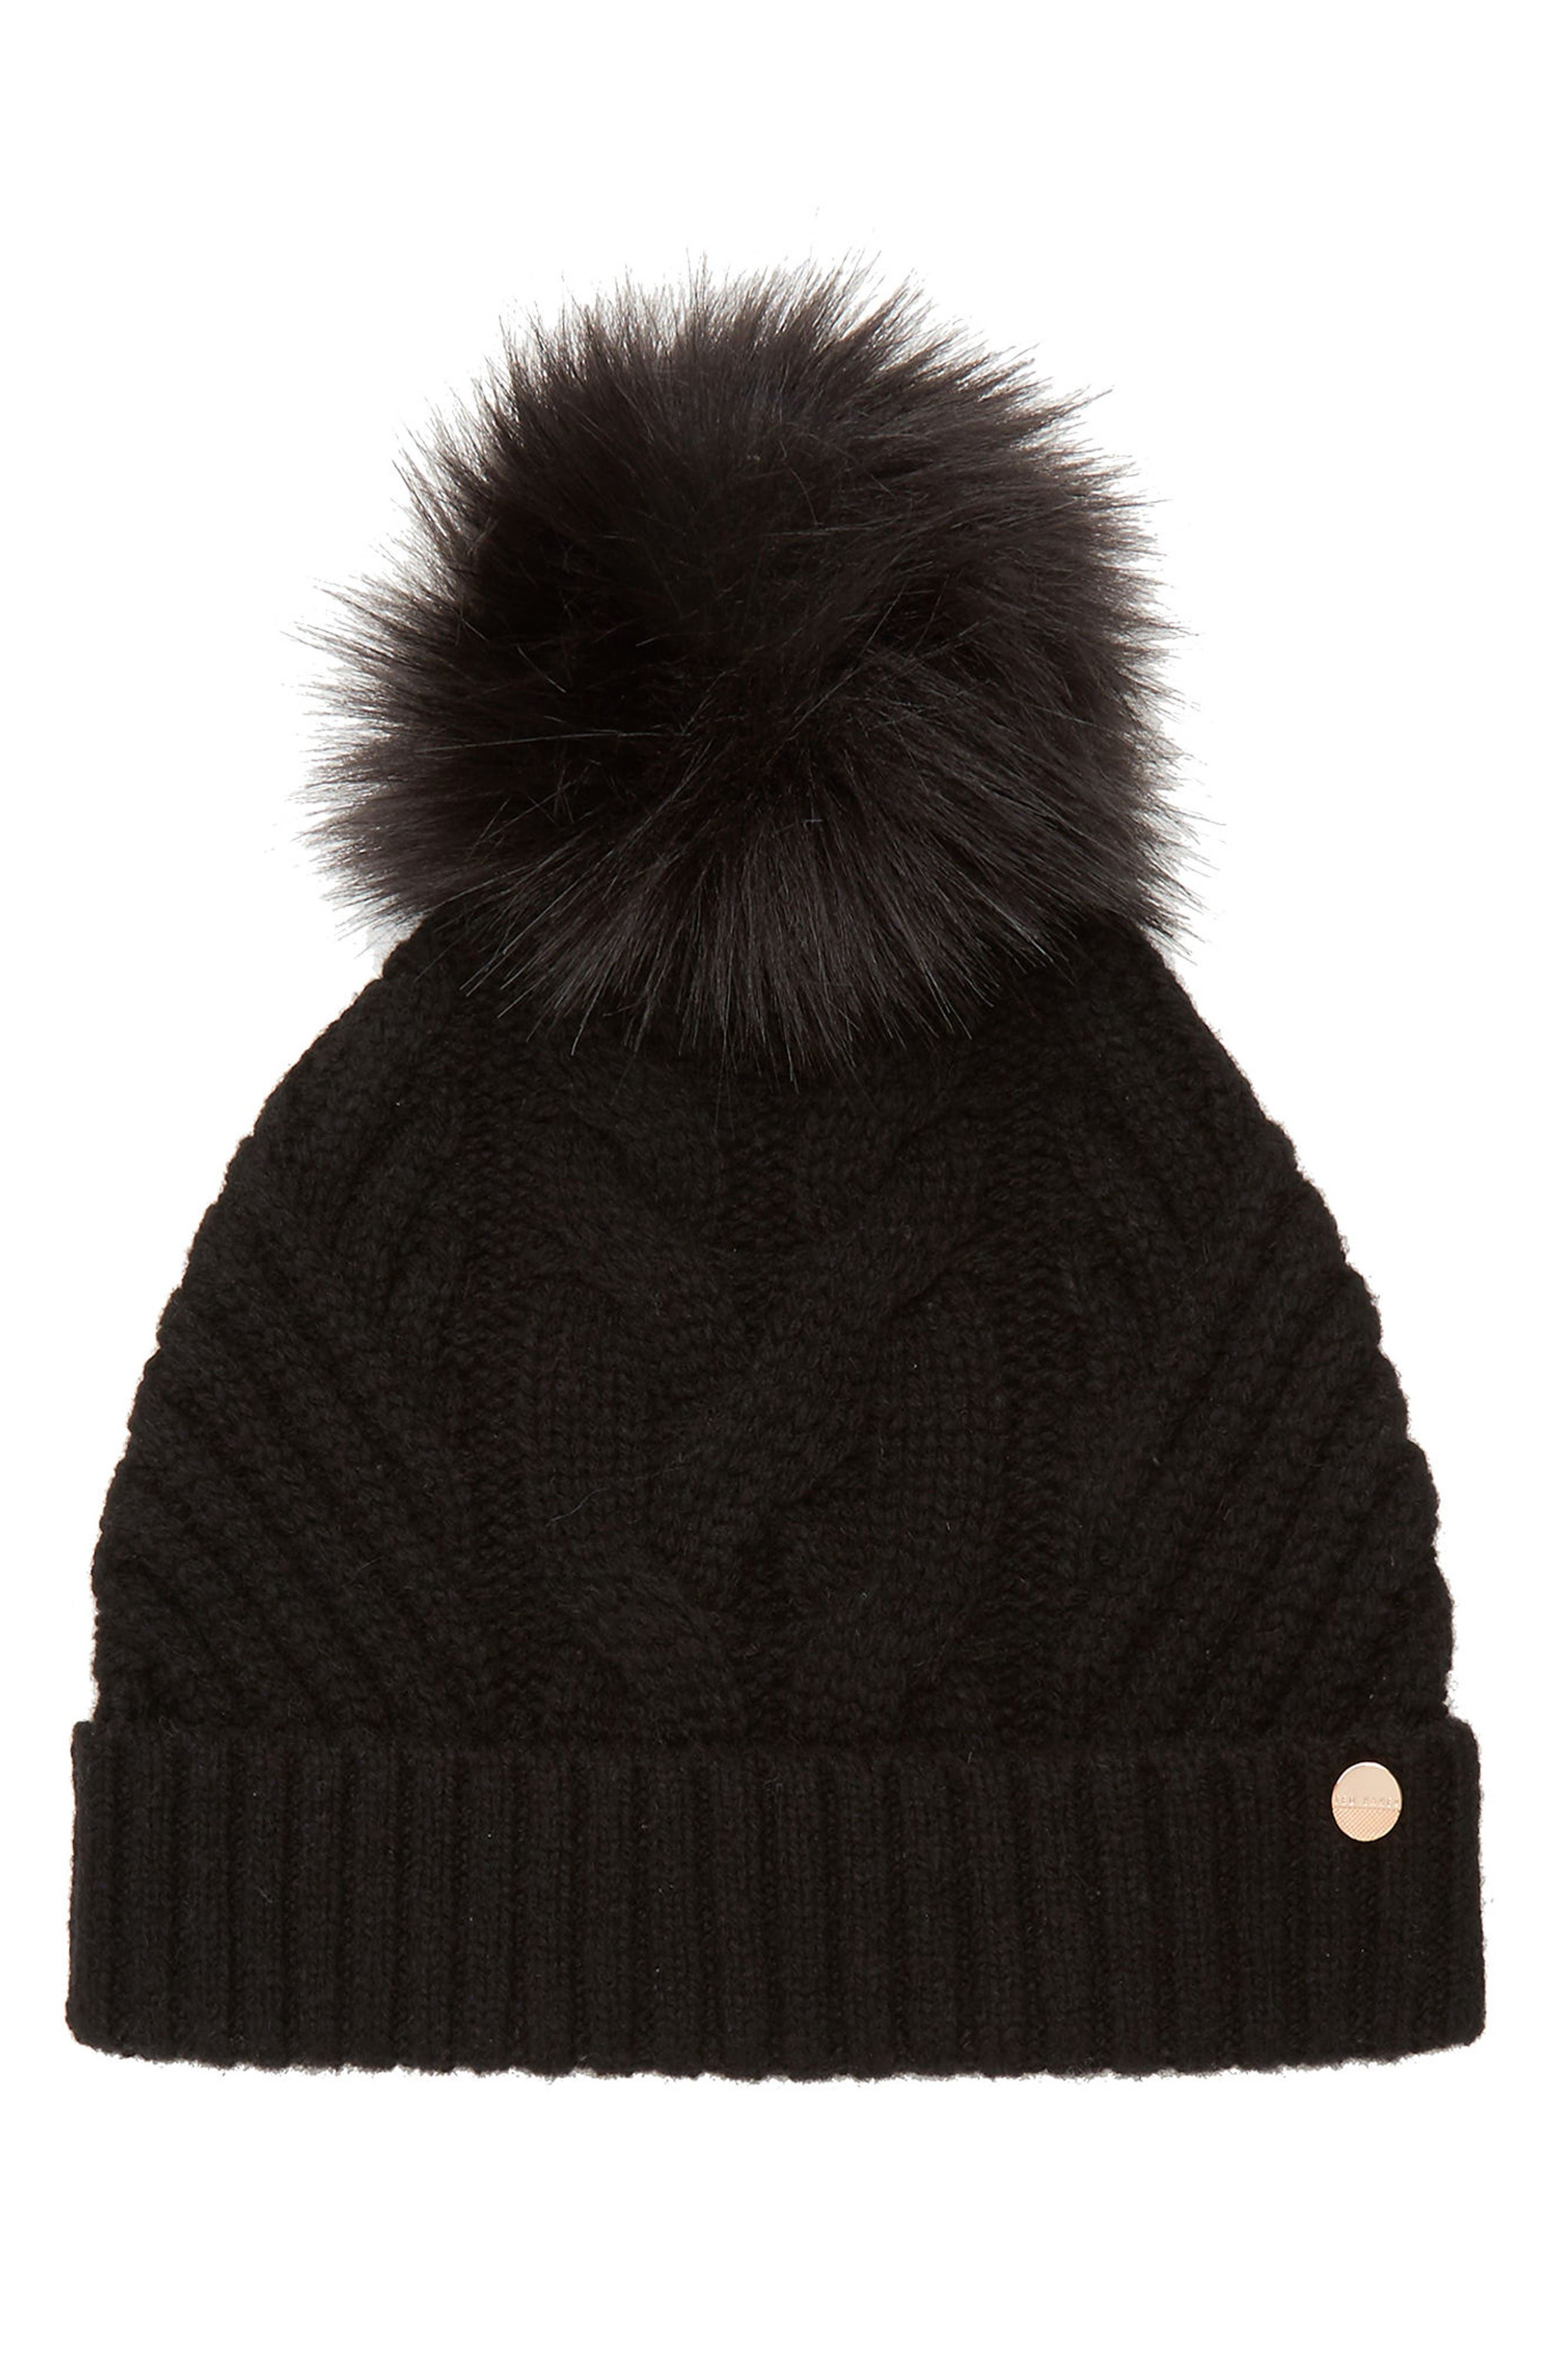 Alternate Image 1 Selected - Ted Baker London Cable Knit Beanie with Faux Fur Pom